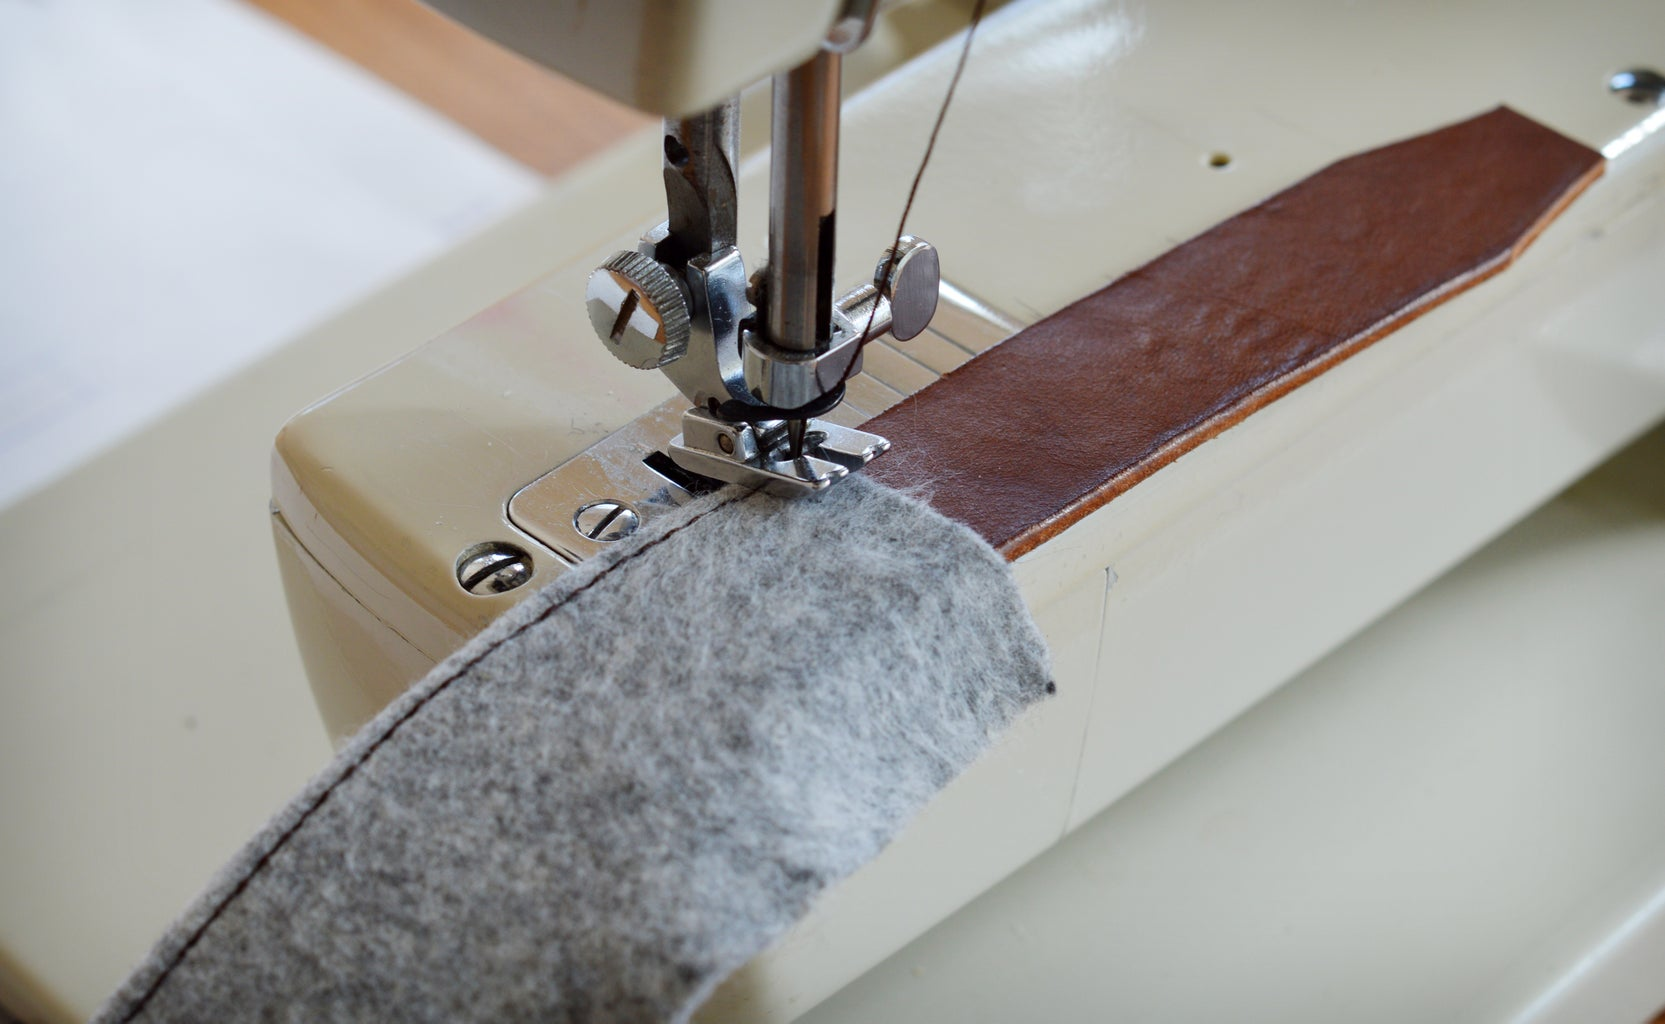 Sewing and Fitting the Wool